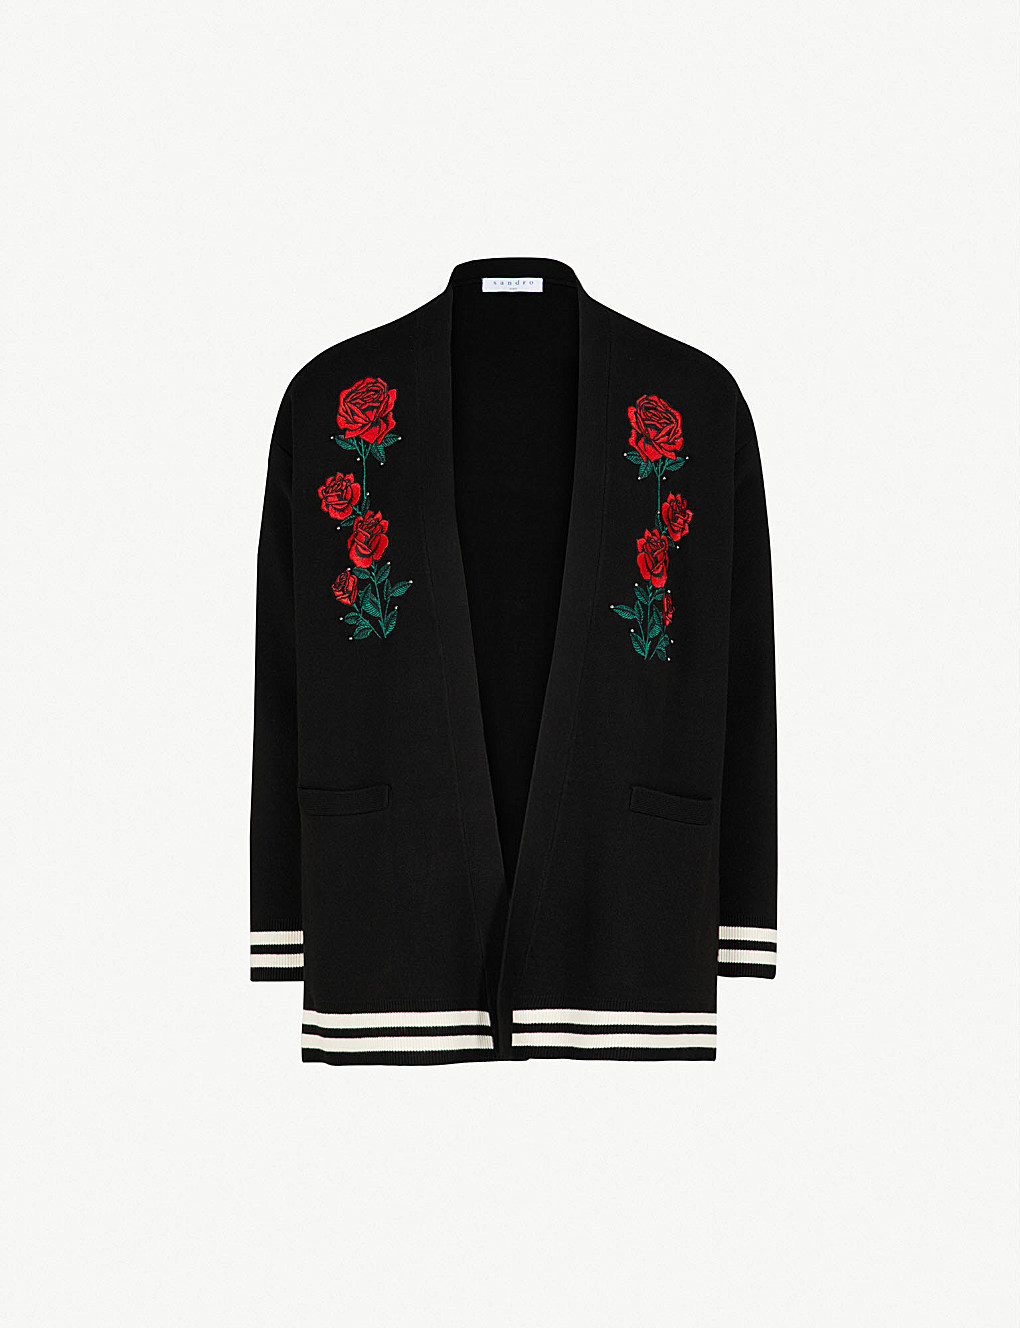 【海外限定】sandroカーディガン☆Rose-embroidered knitted car